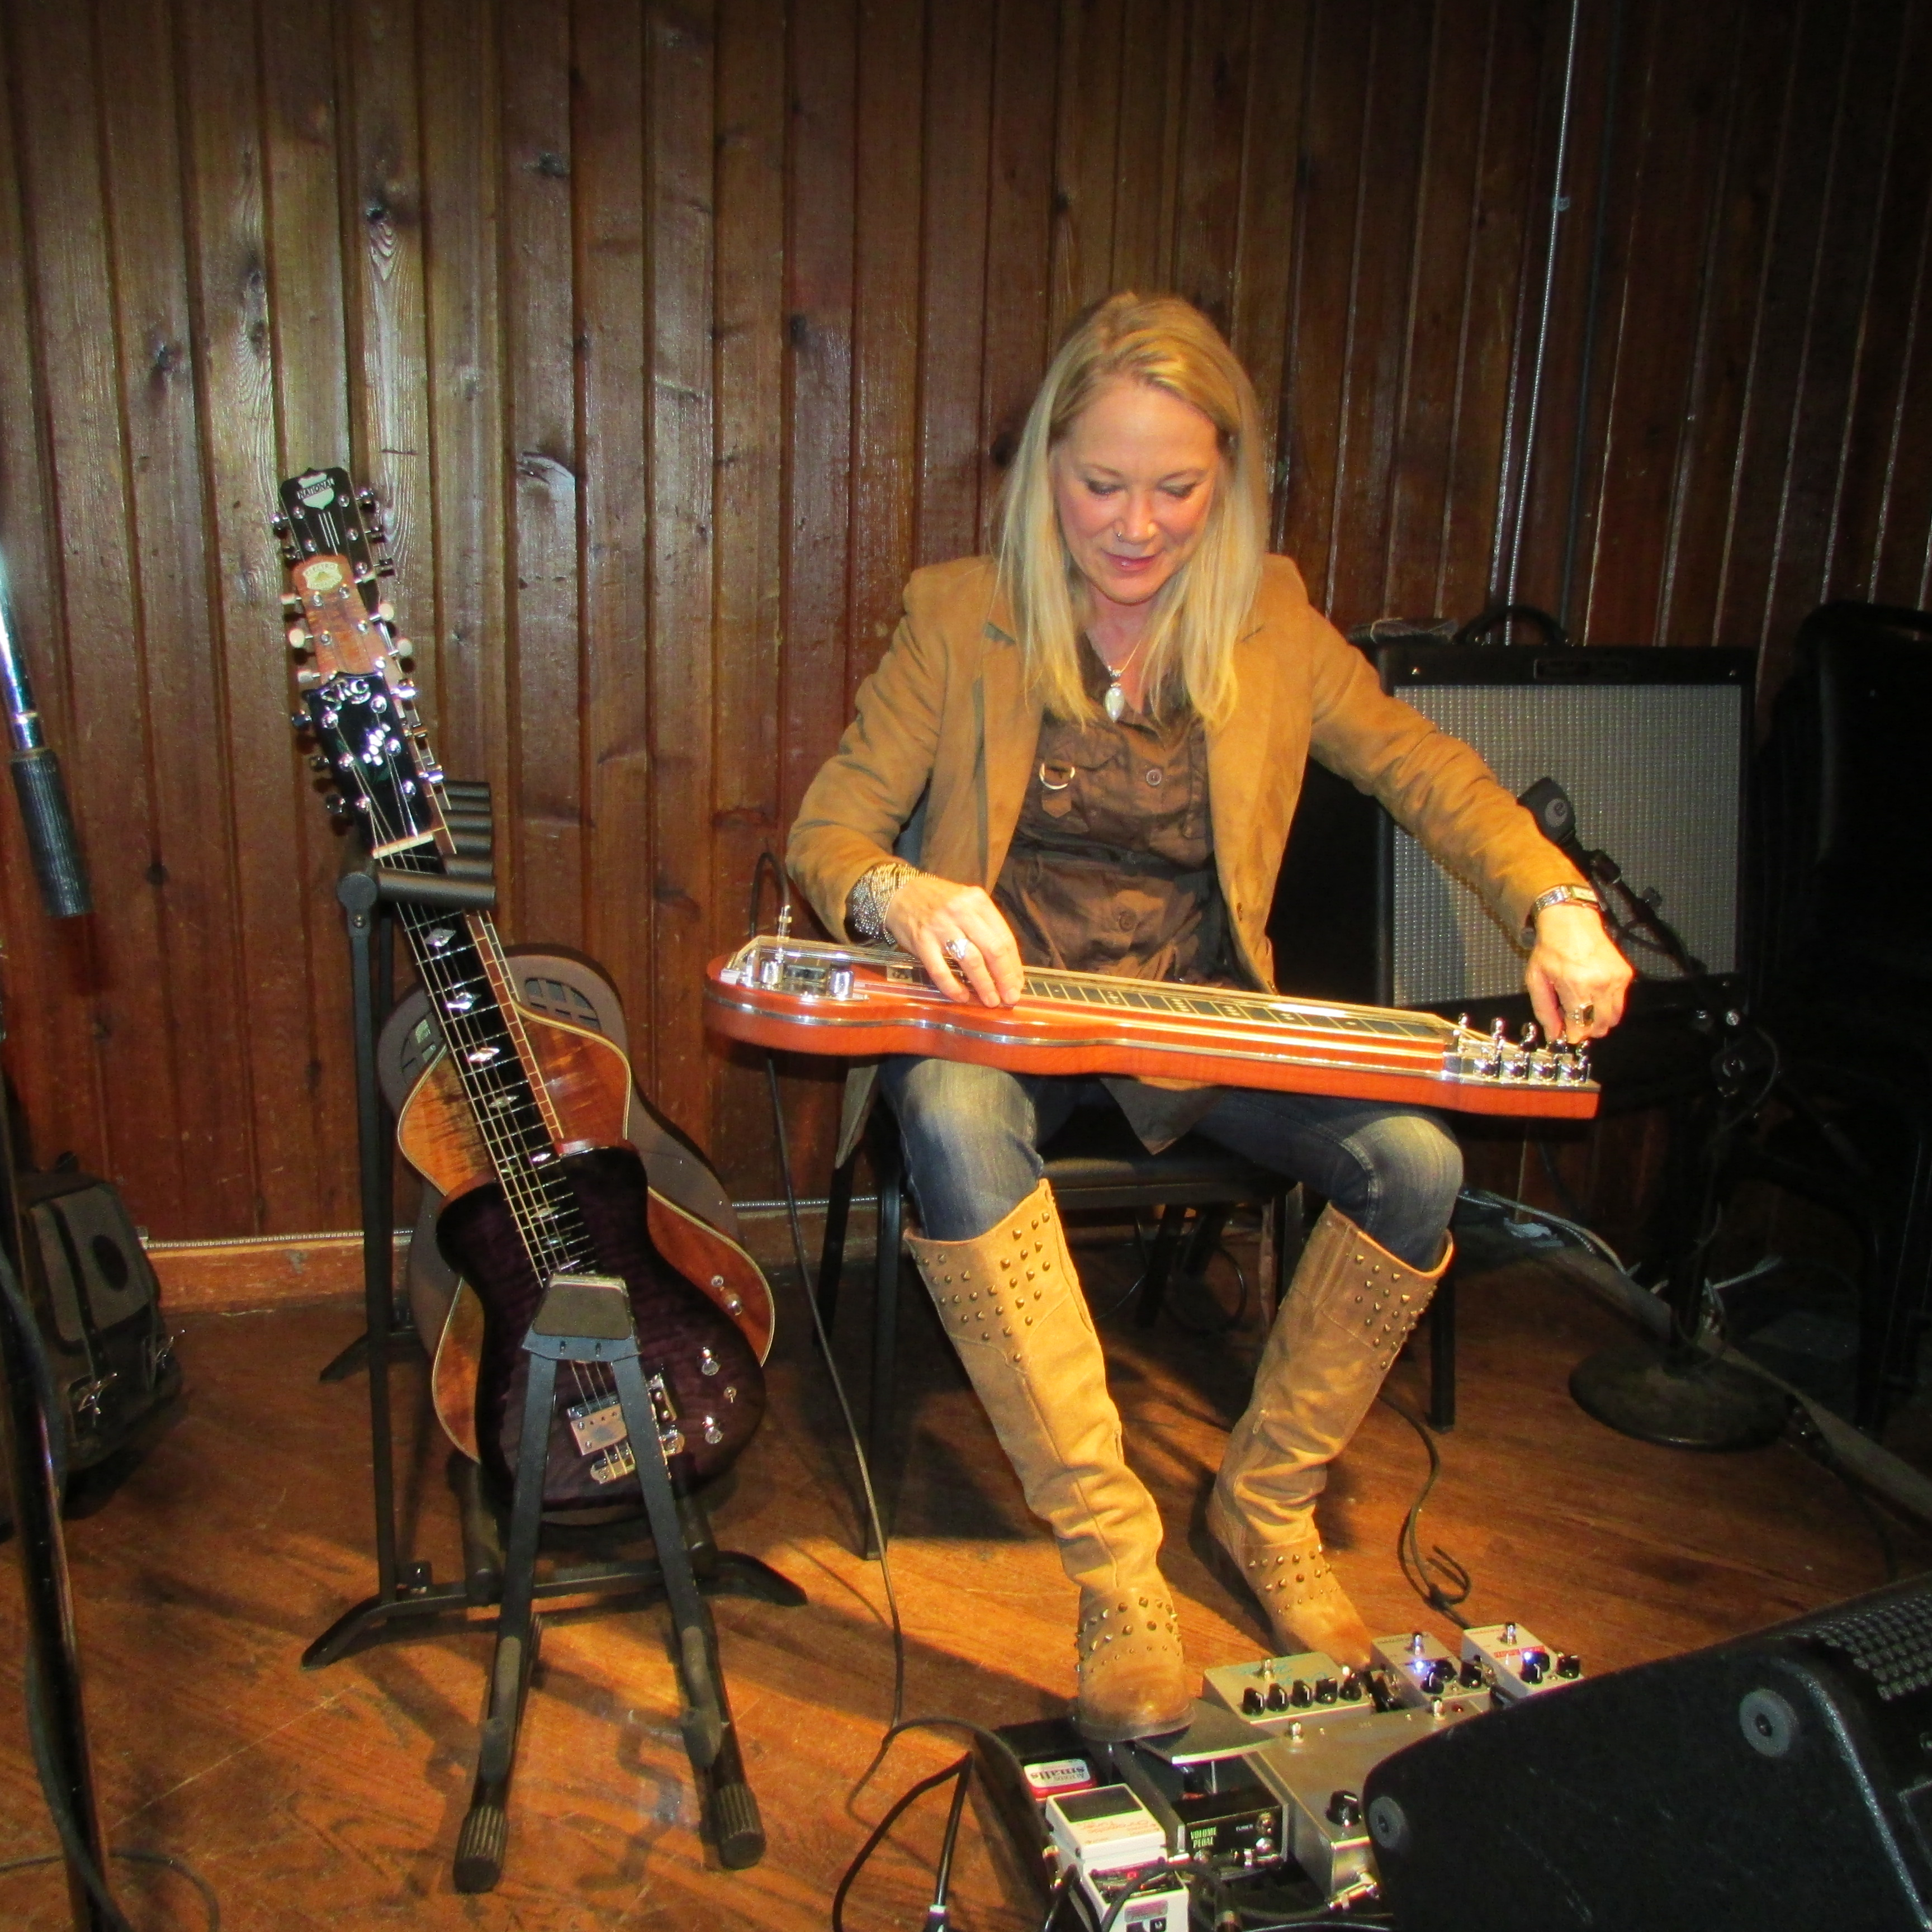 Cindy Cashdollar feeling the lap steel love is there any more pie